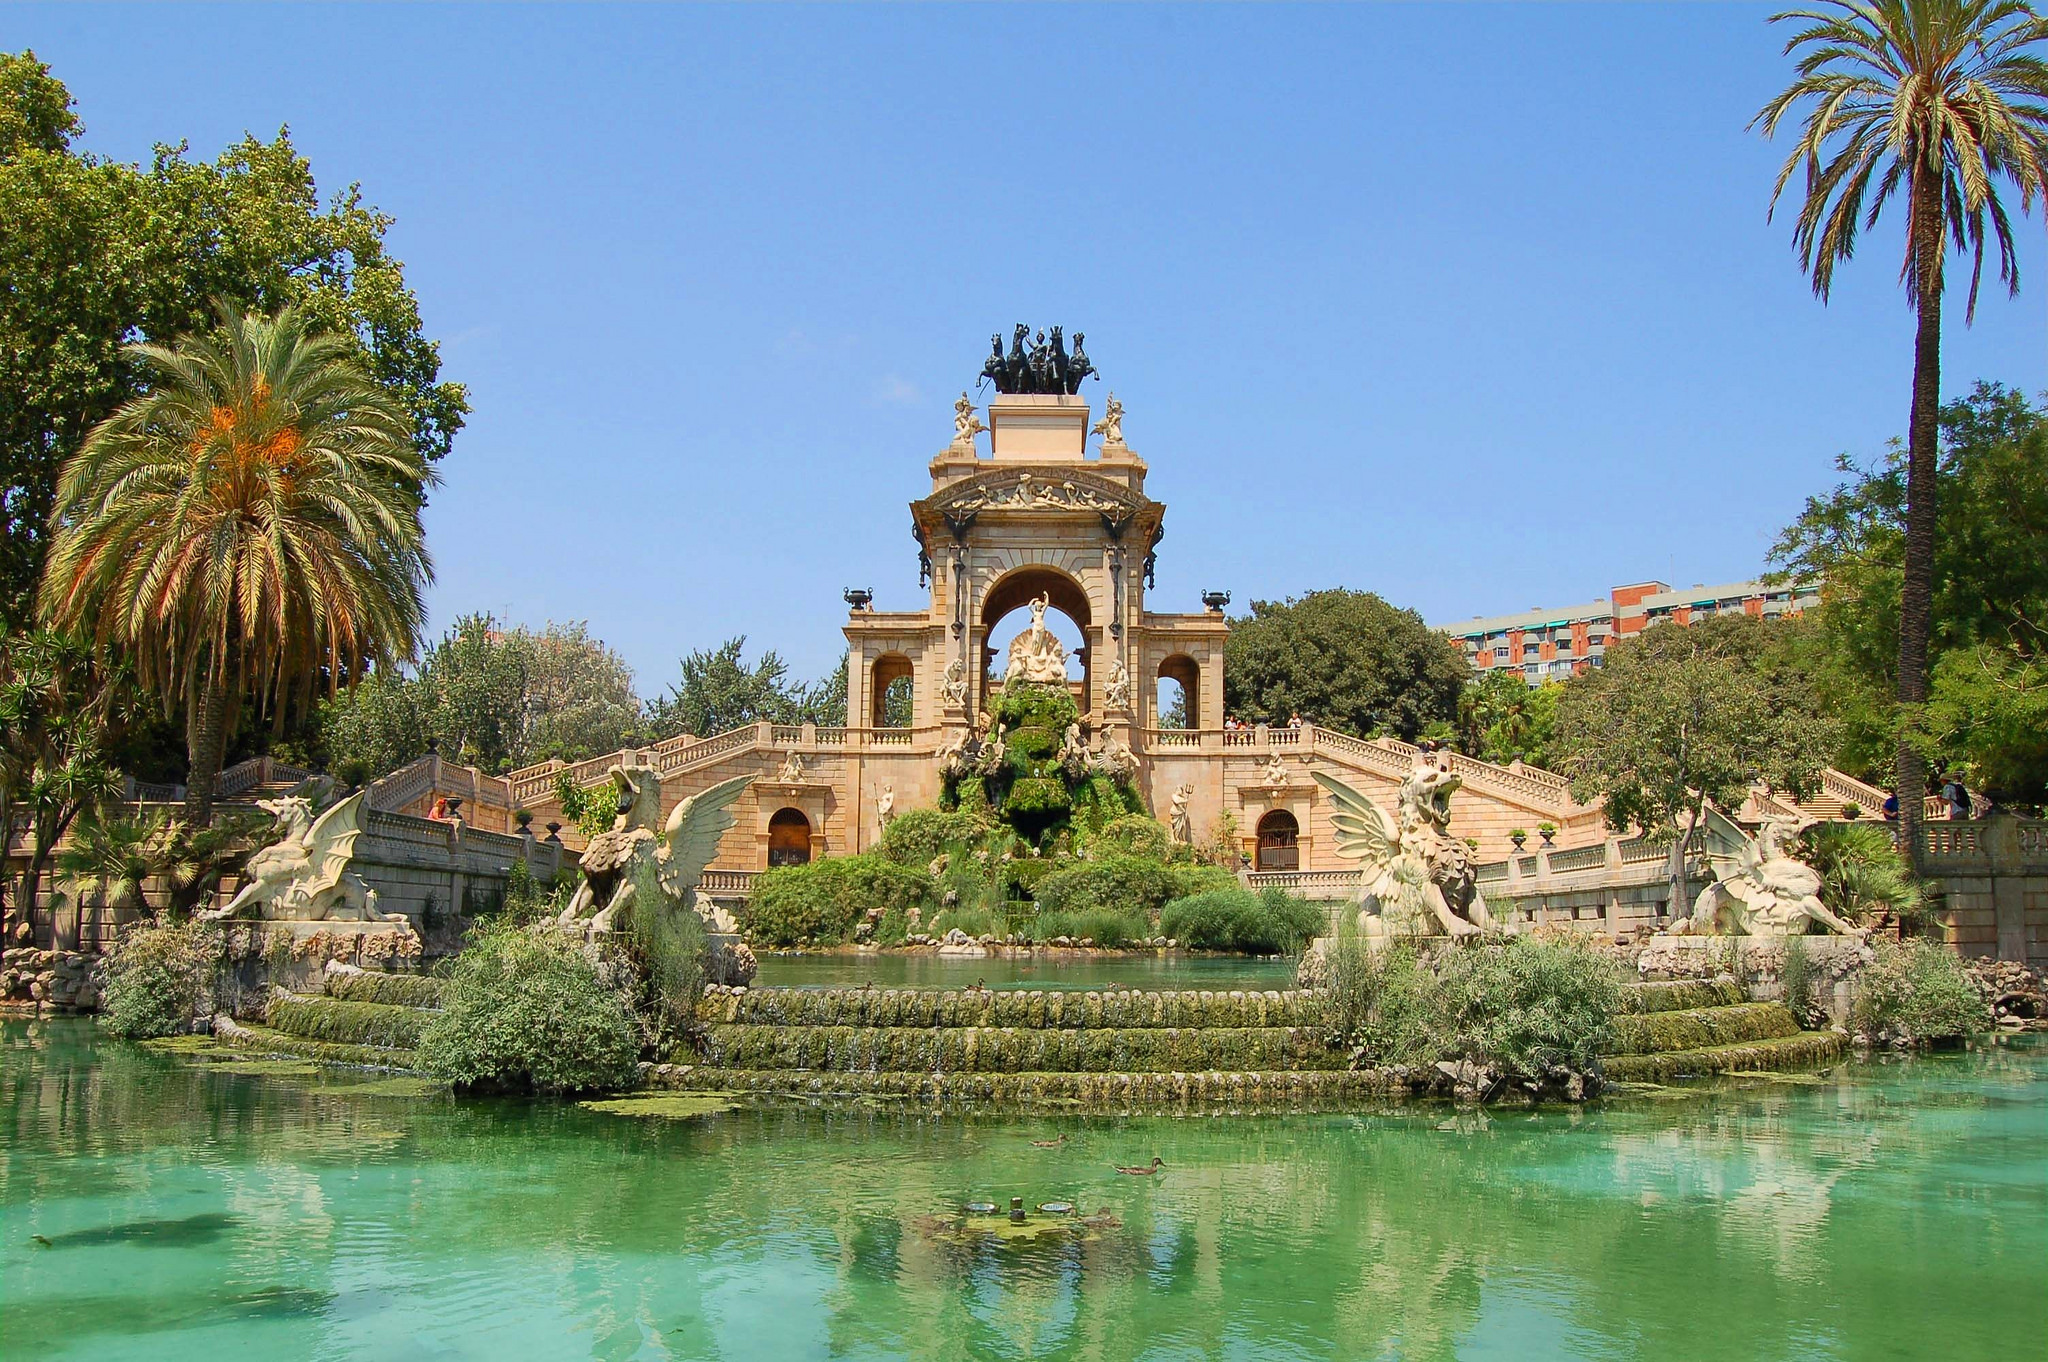 The Parc de la Ciutadella © Mark_M